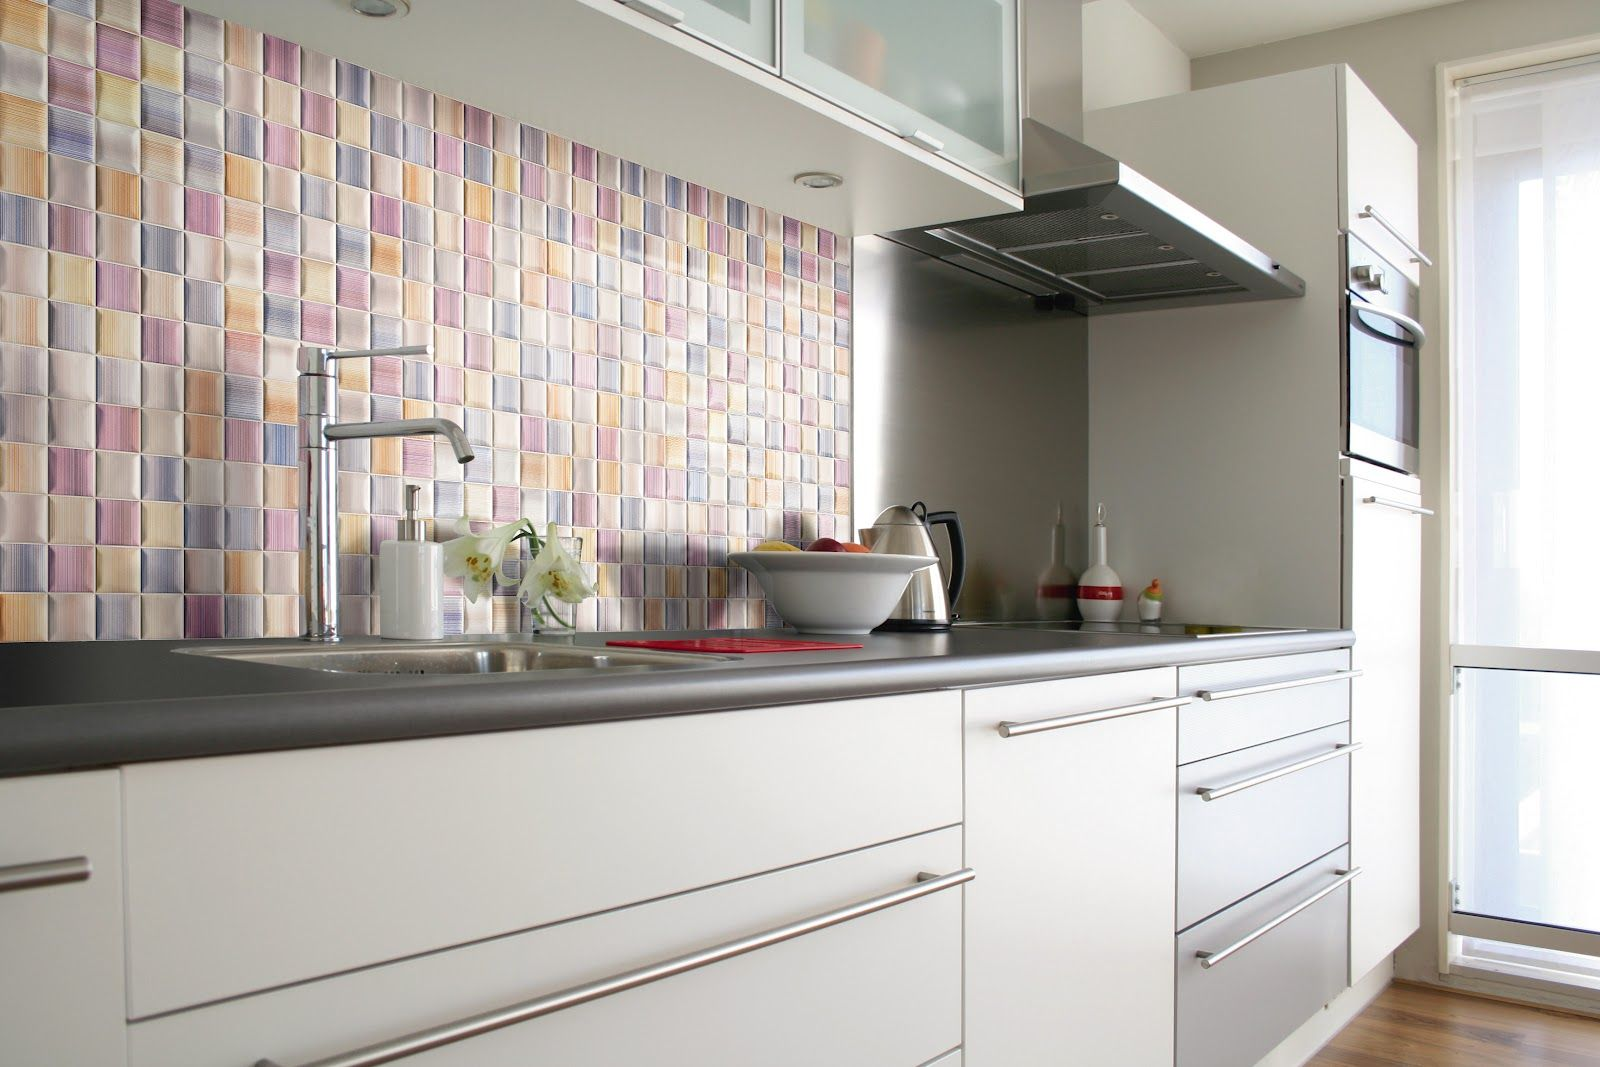 Merveilleux Pretty Pastel Backsplash   13 Beautiful Backsplash Ideas To Add Character  To Your Kitchen Best Tiles